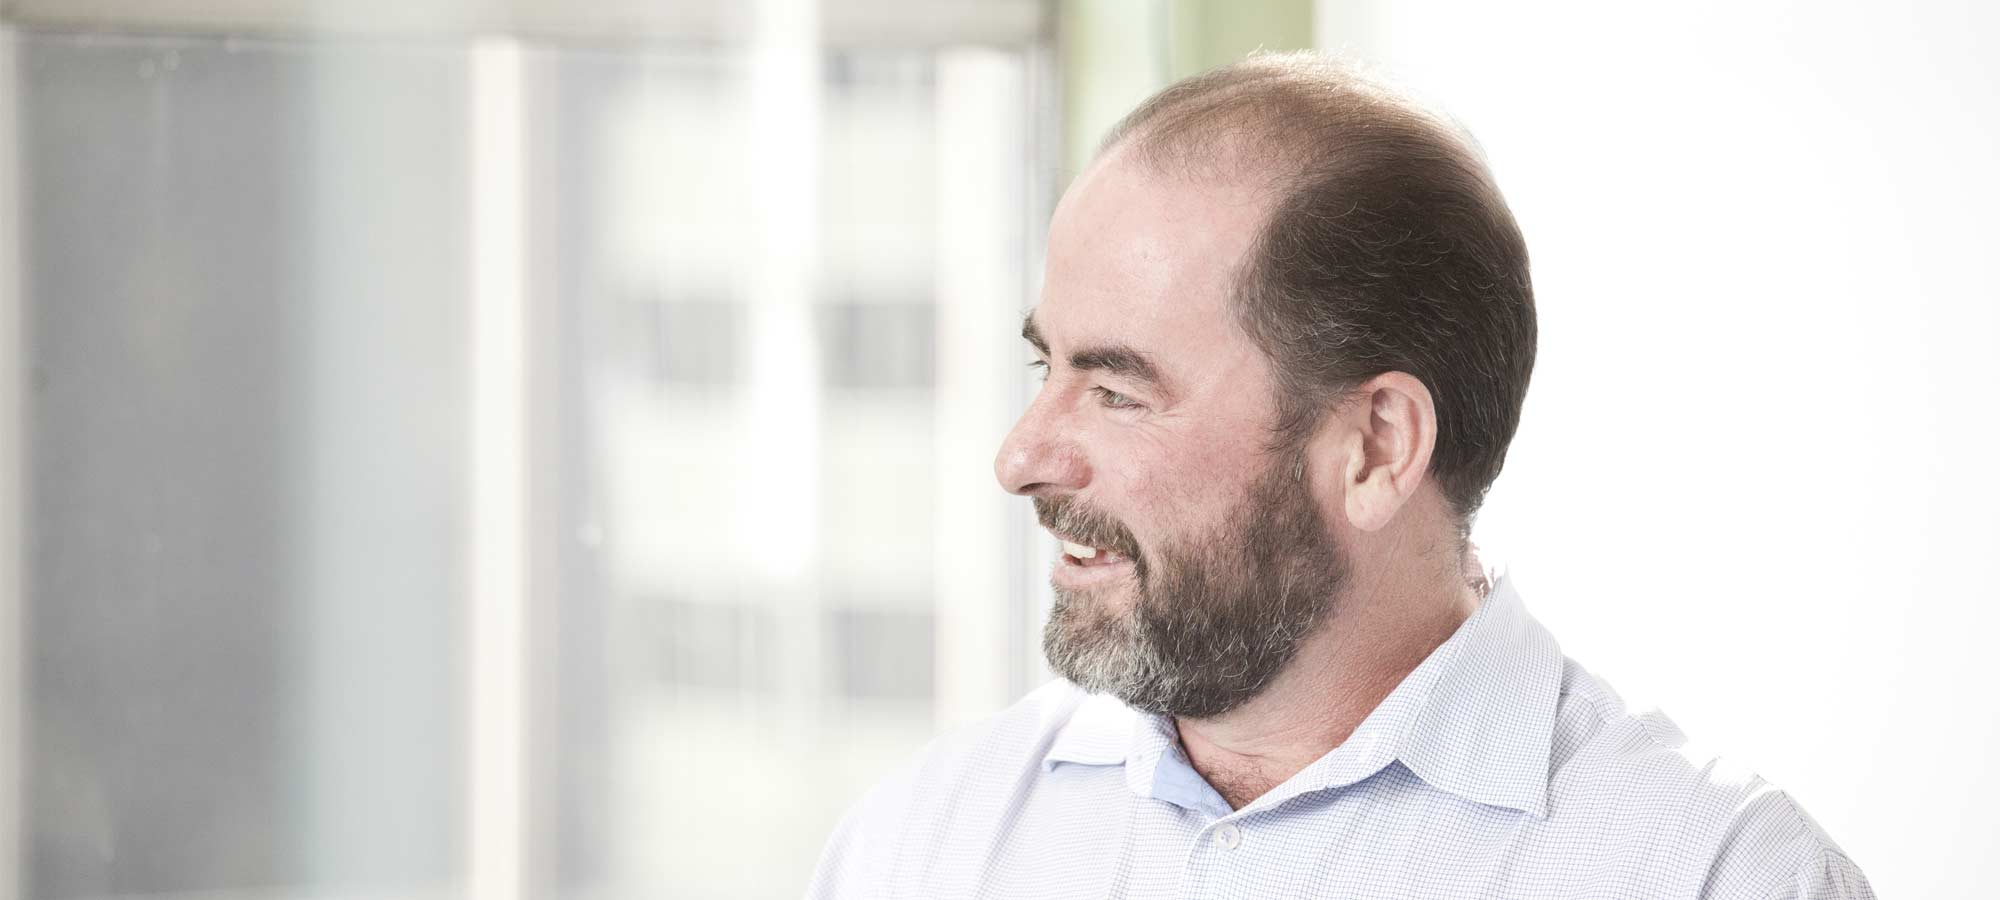 Paul Ramsay, Director and Principal Consultant - IT Governance, Equinox IT Wellington